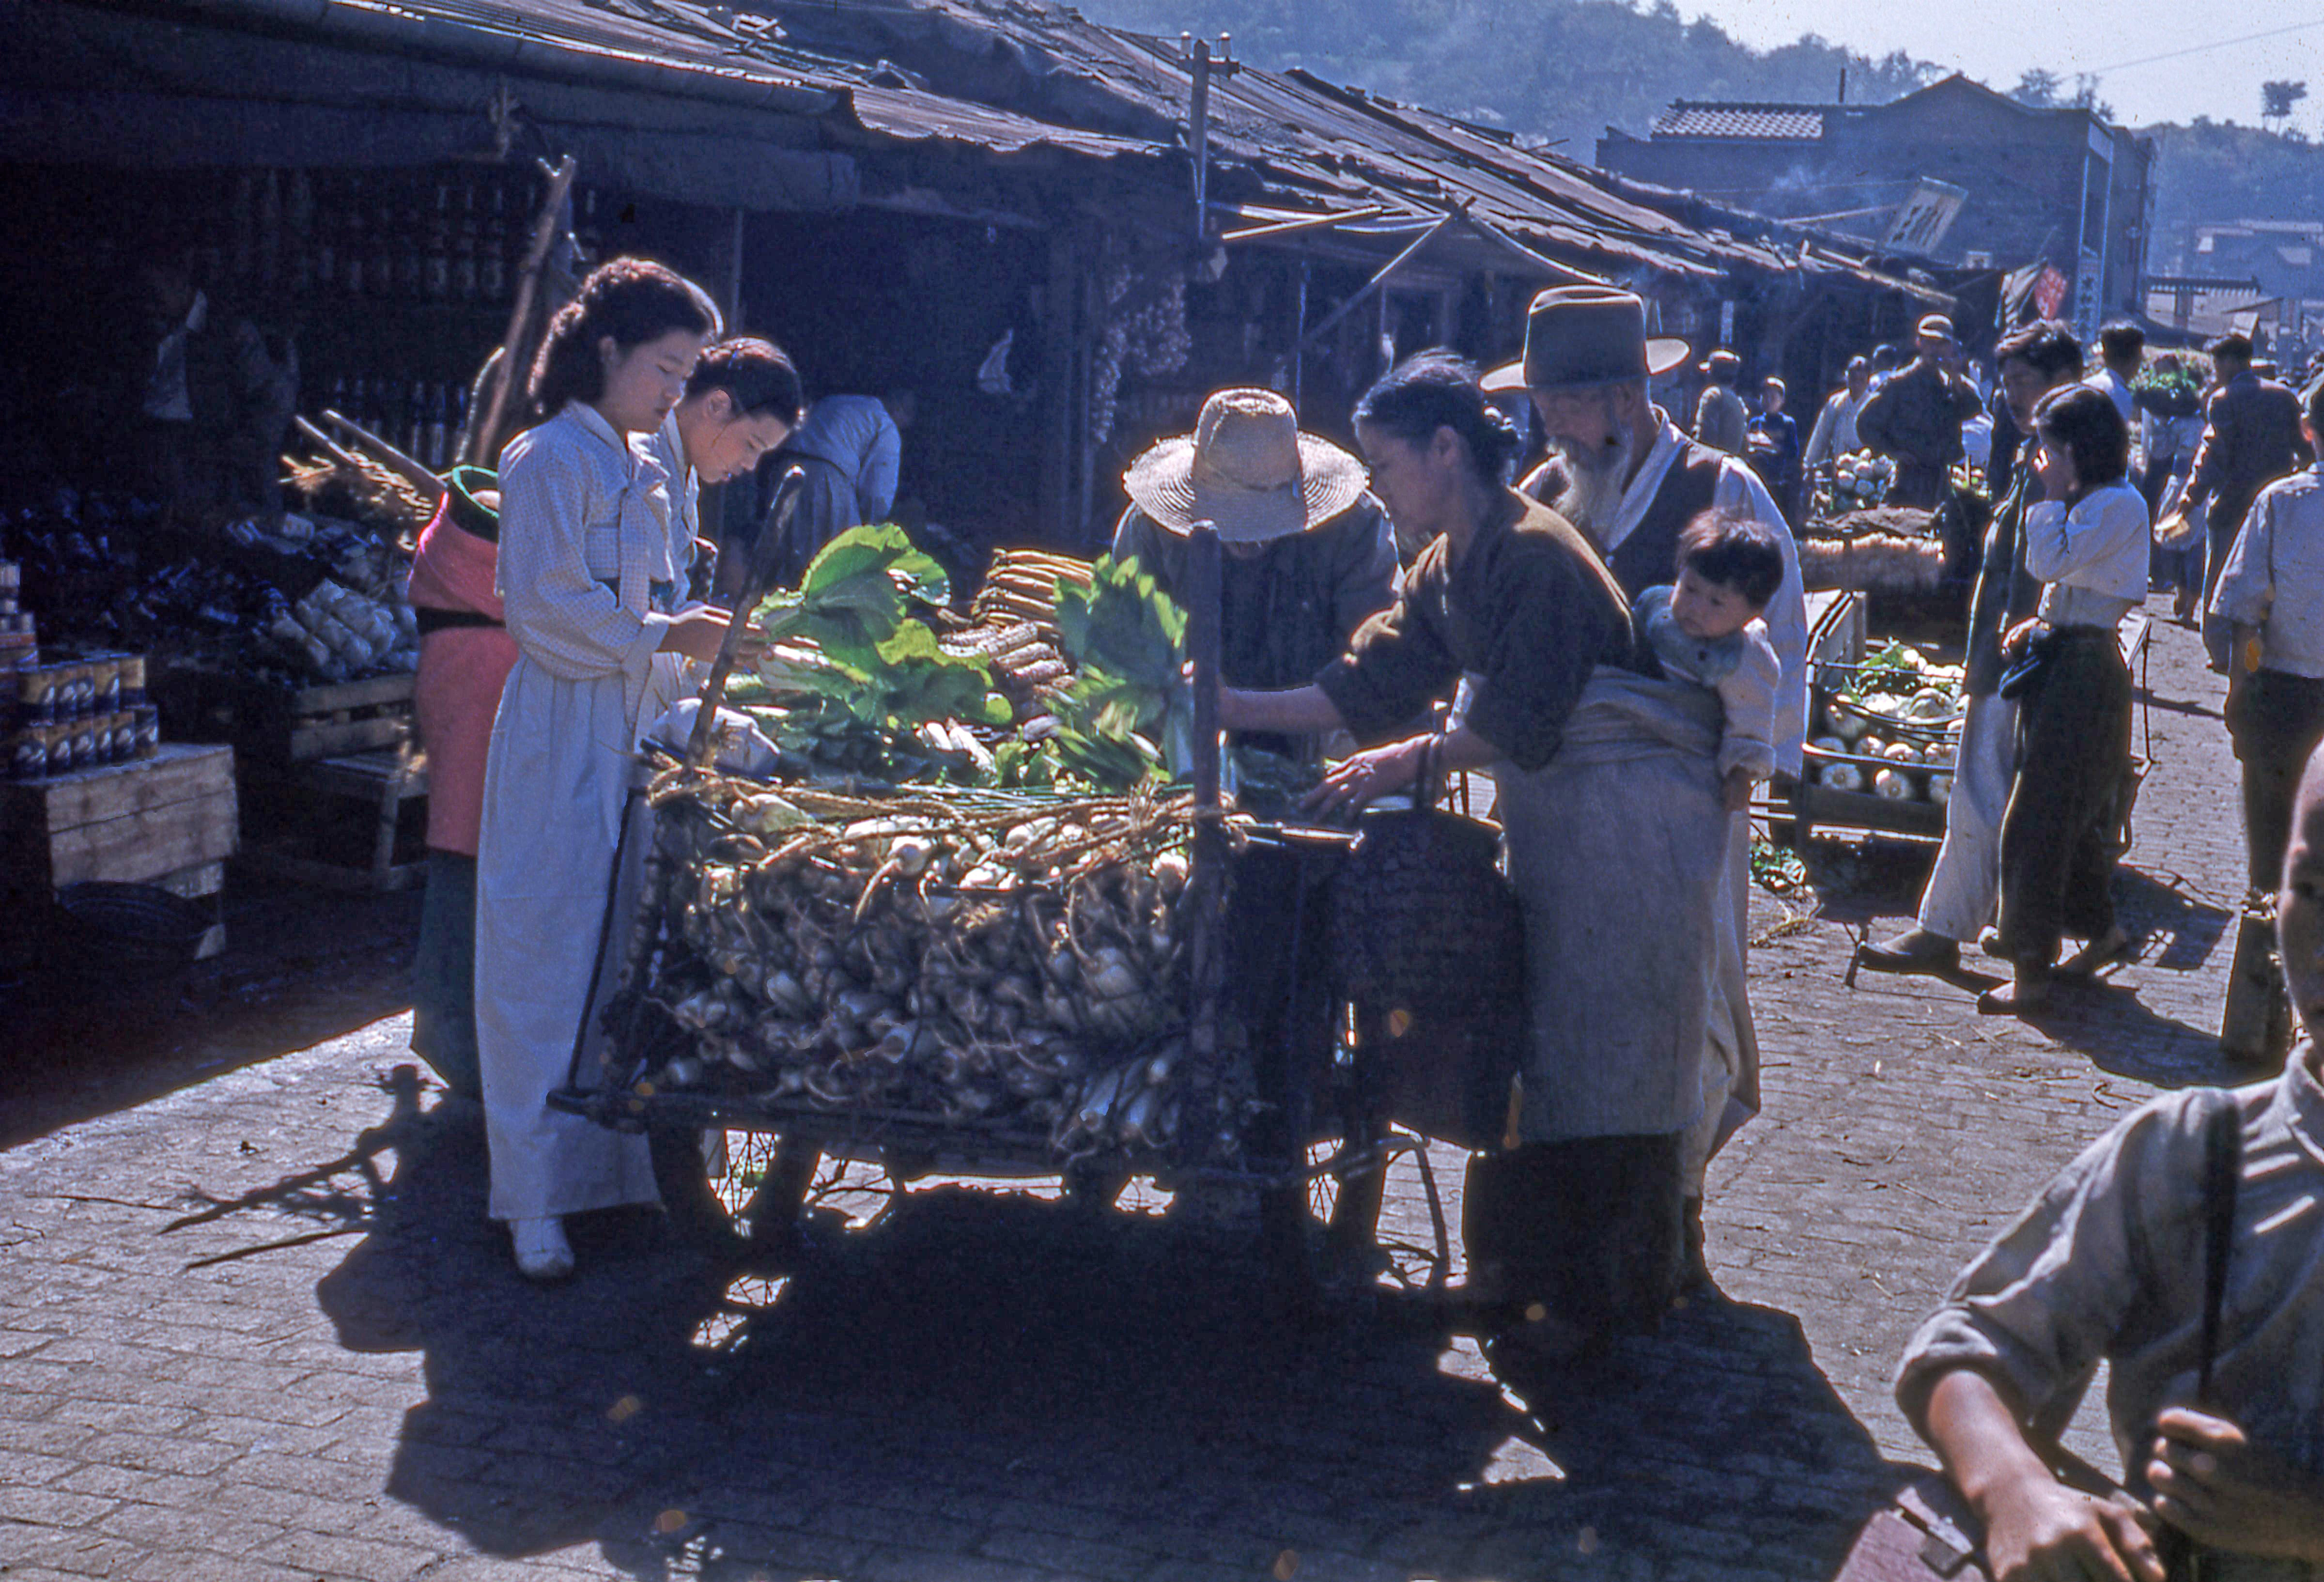 buying food from a pushcart in korea